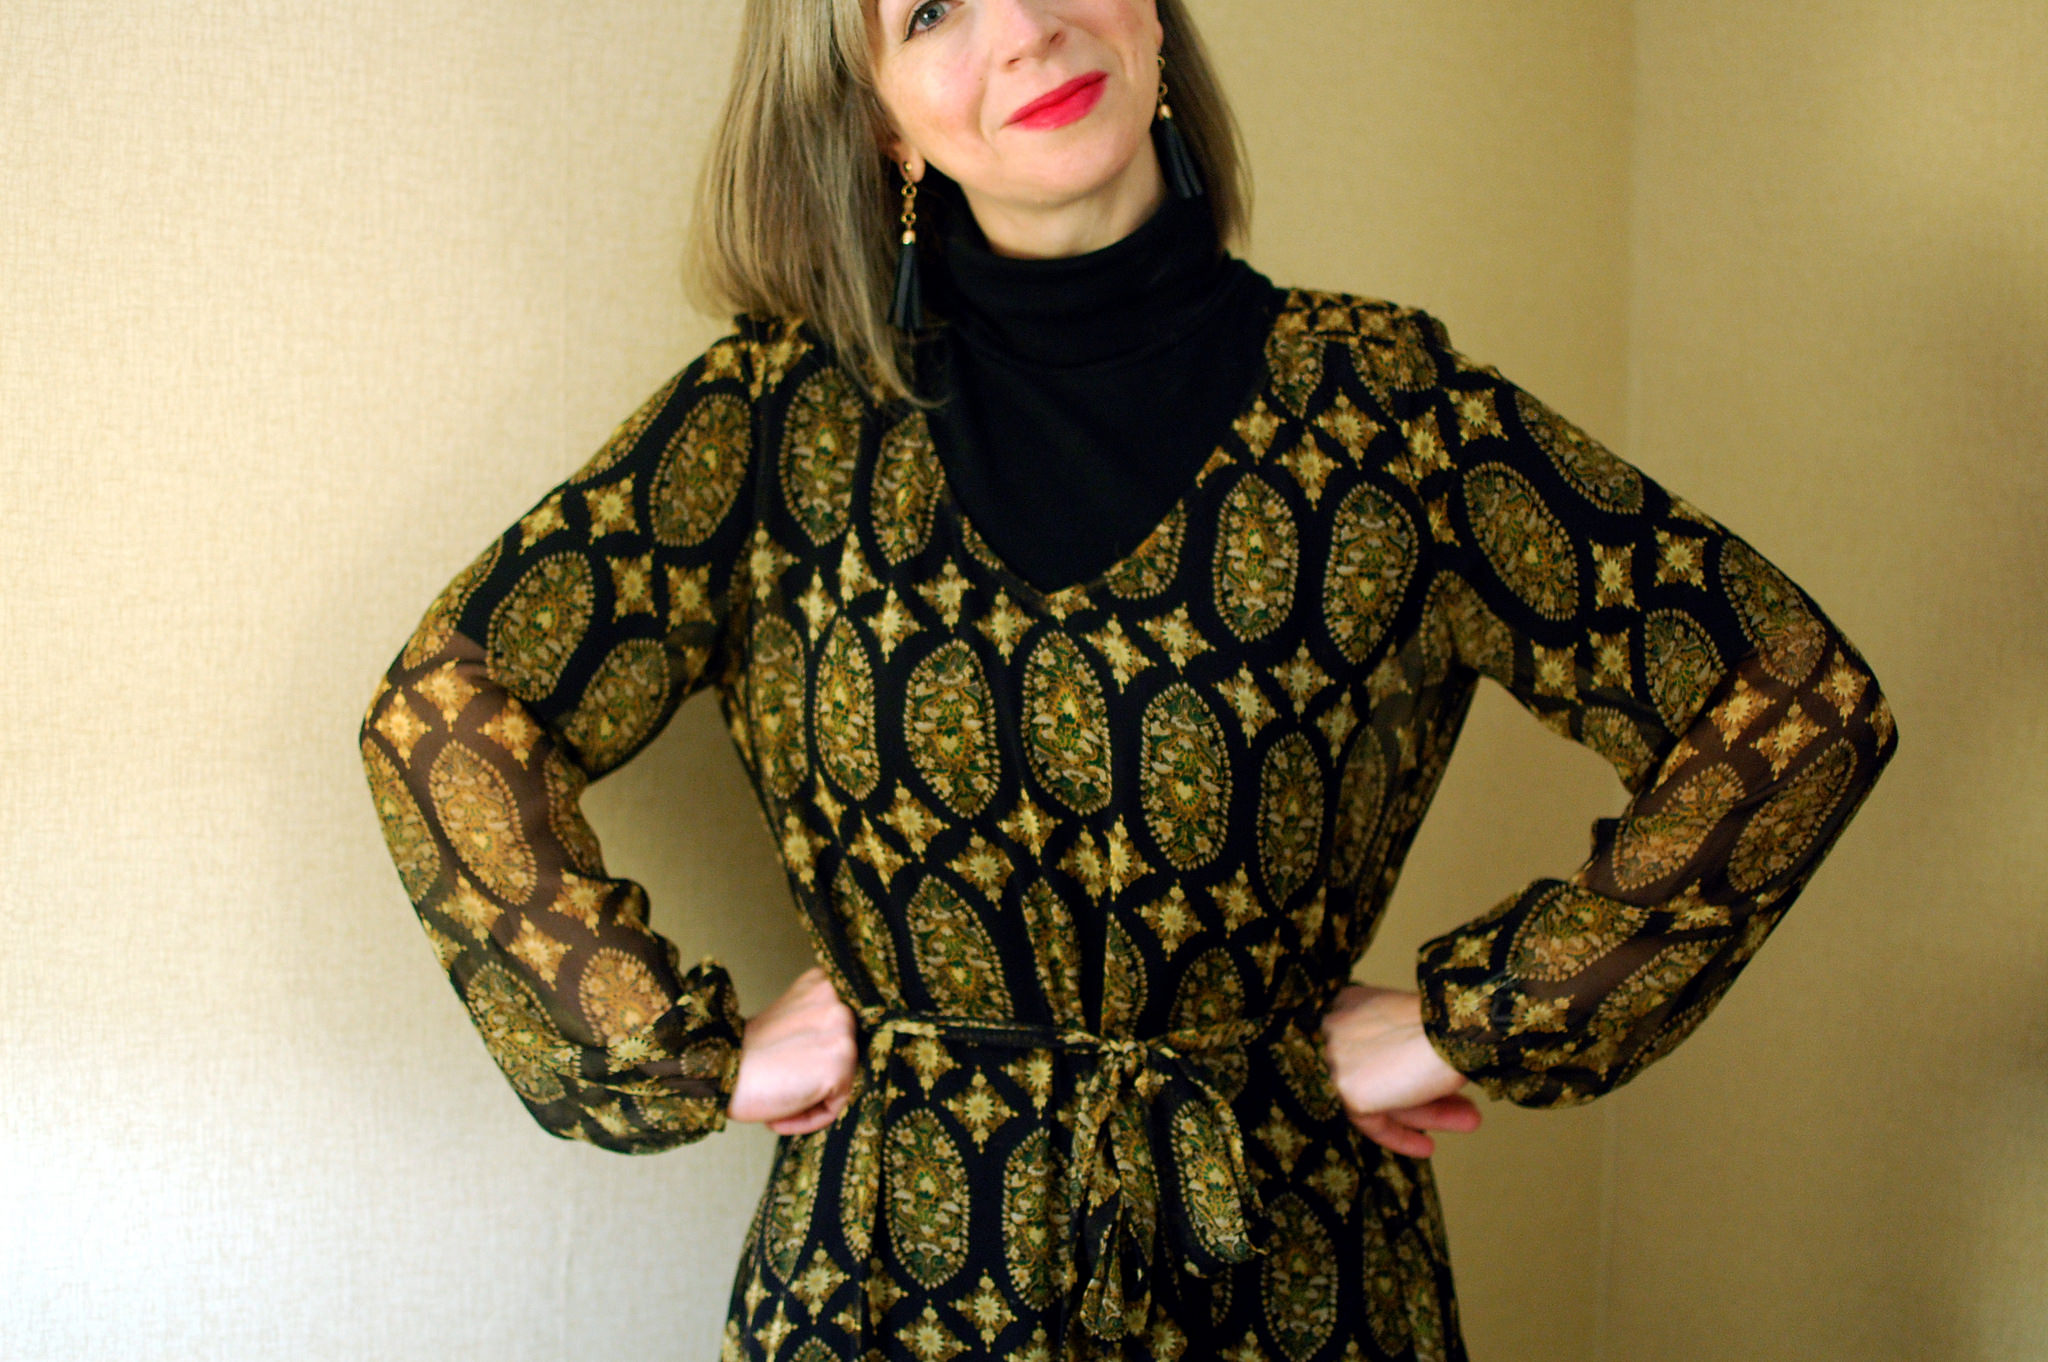 turtleneck under sheer dress daily outfit blog ootd whatiwore2day